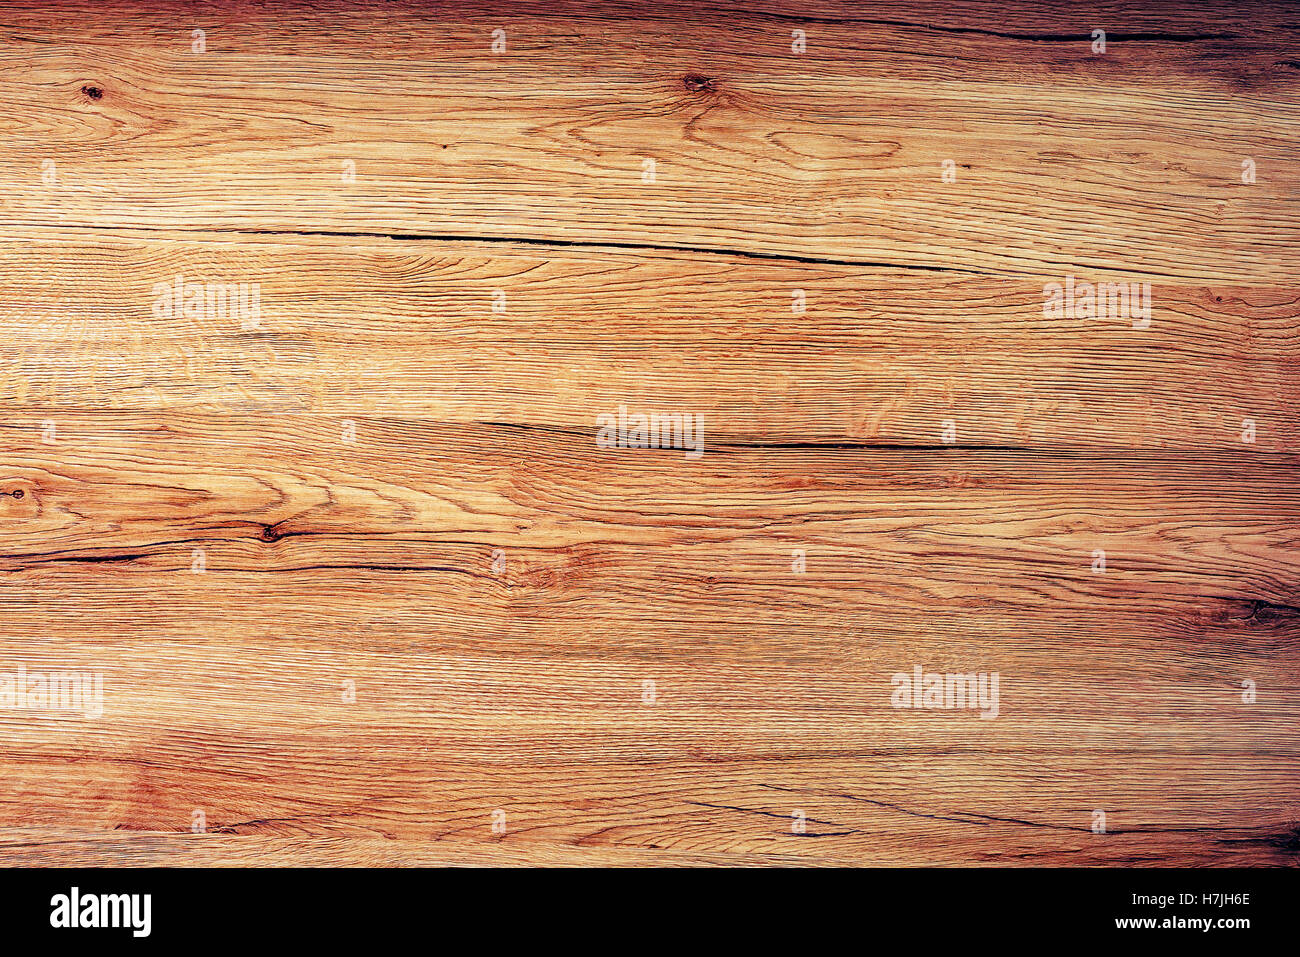 Rustic wooden board texture, table top view as background - Stock Image